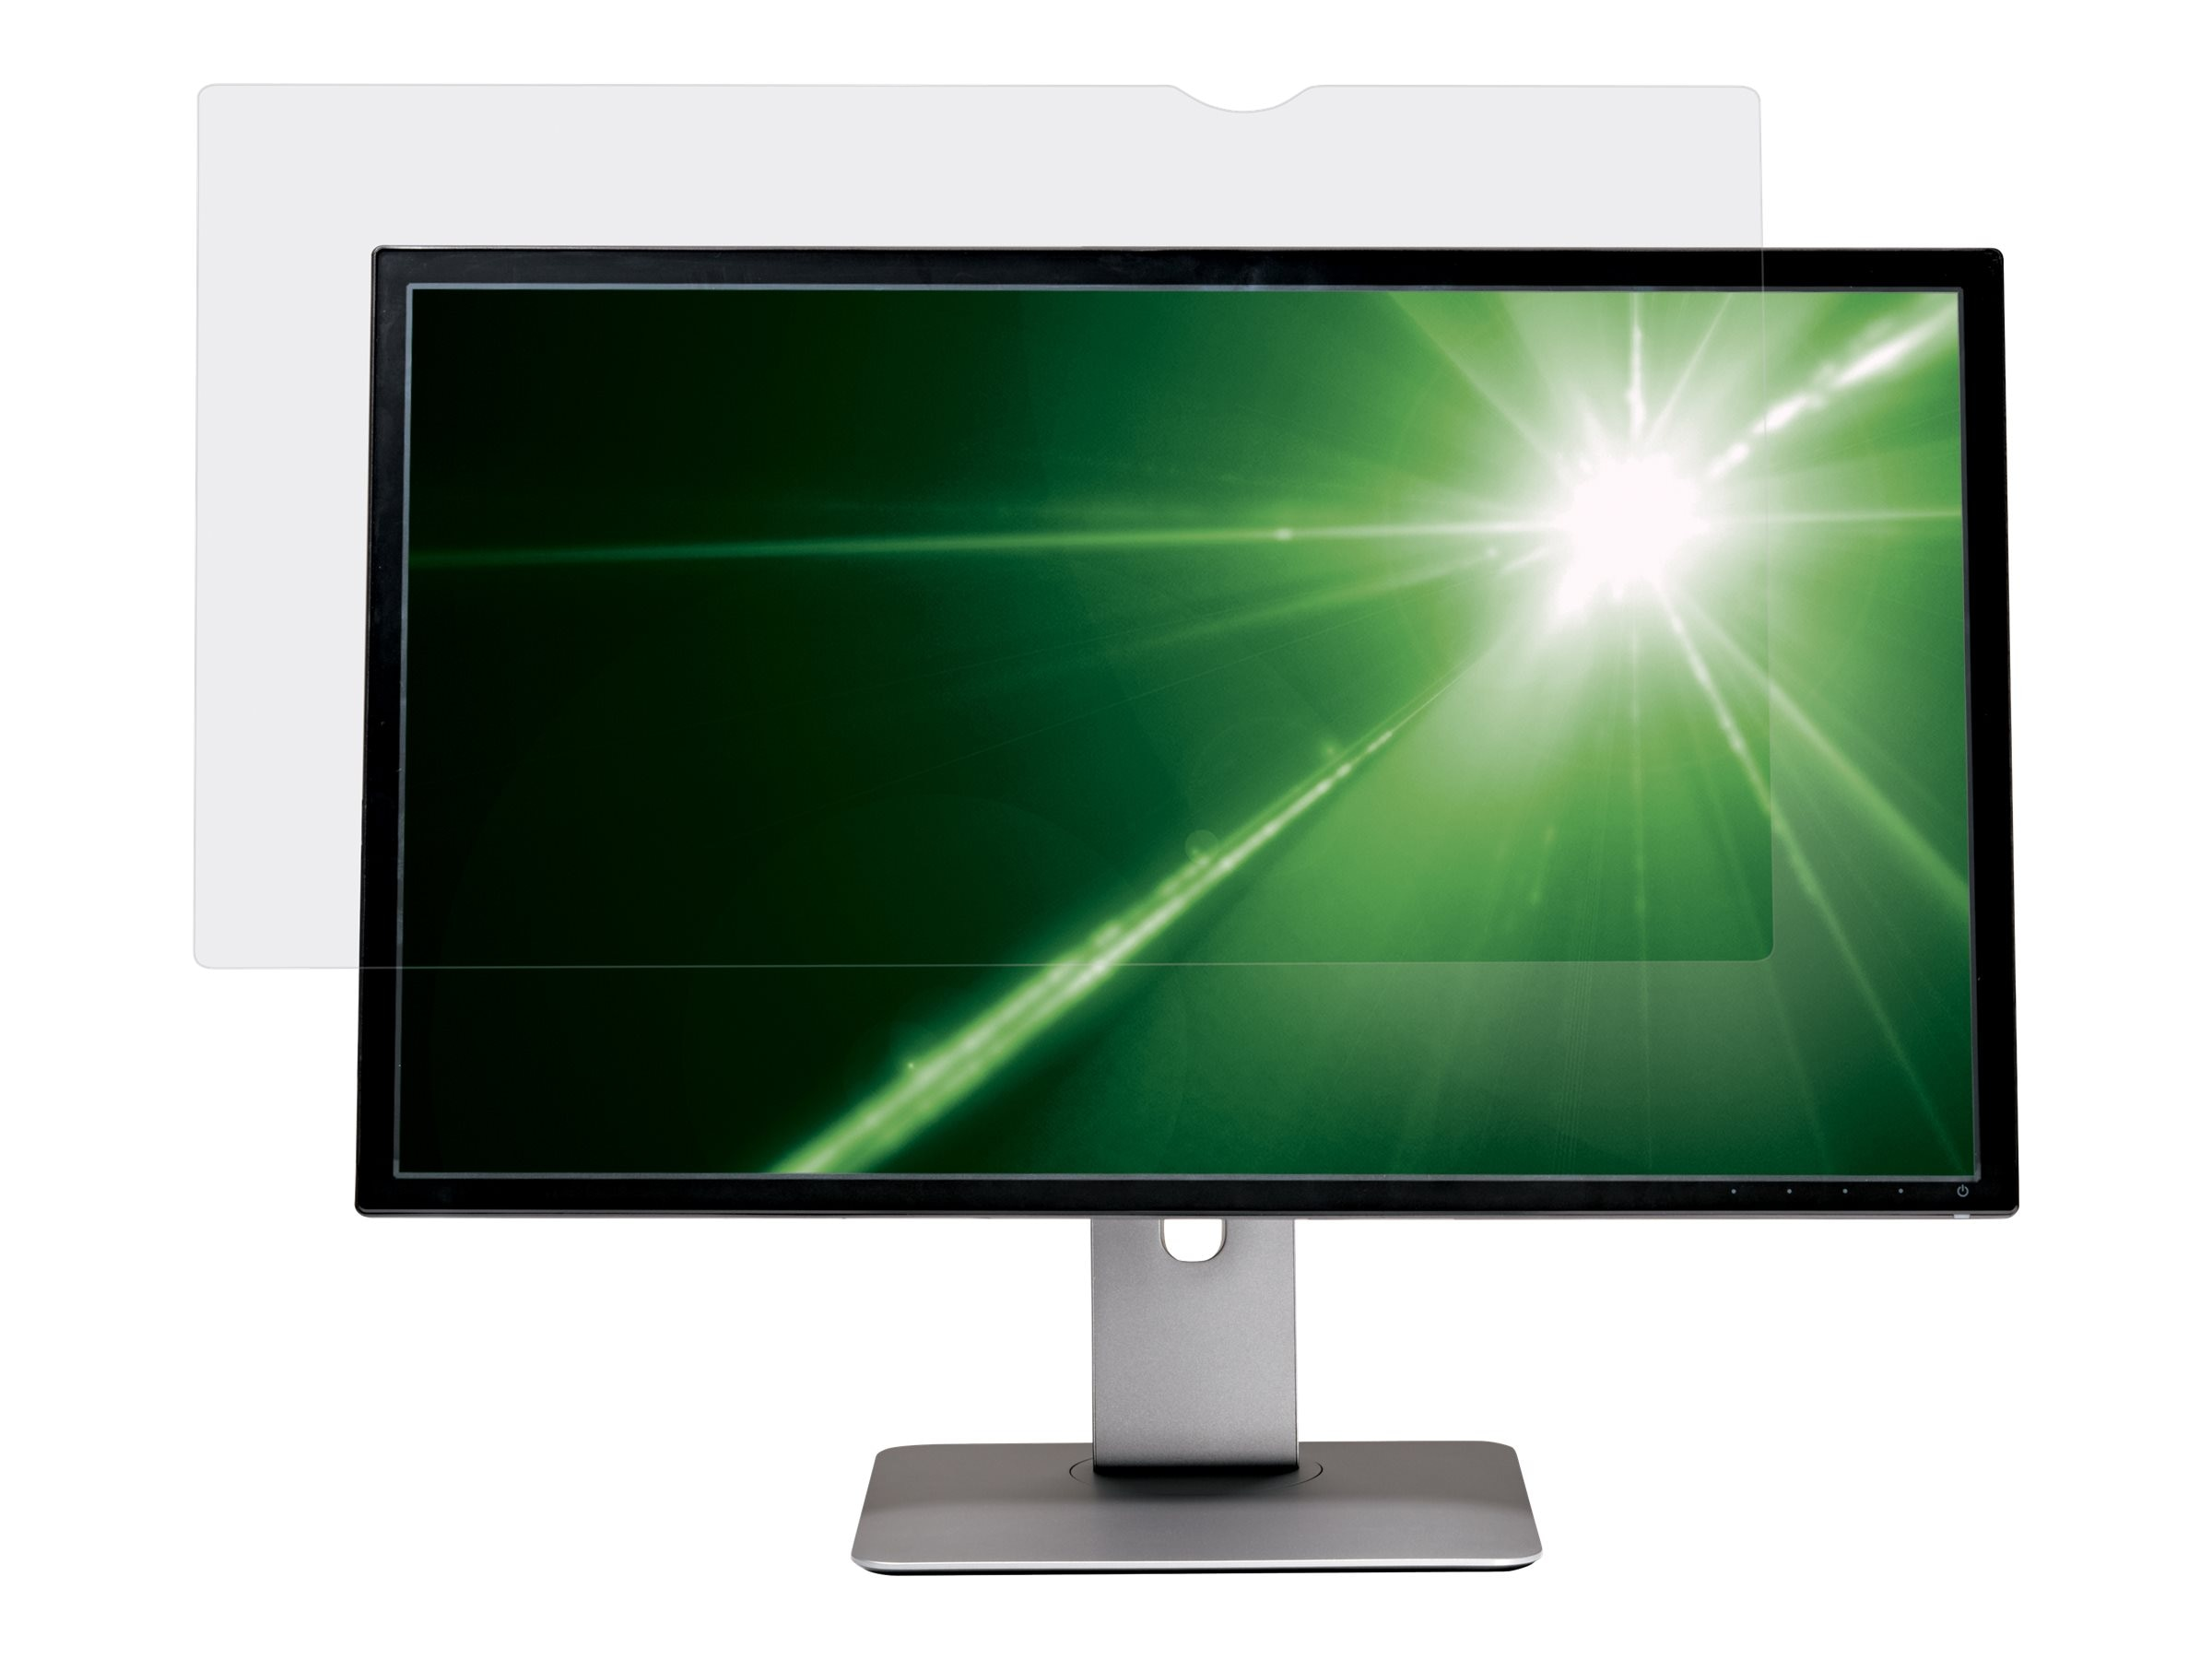 3M AG 24.0W9 Anti-Glare Filter for 24 16:9 Monitors, AG240W9B